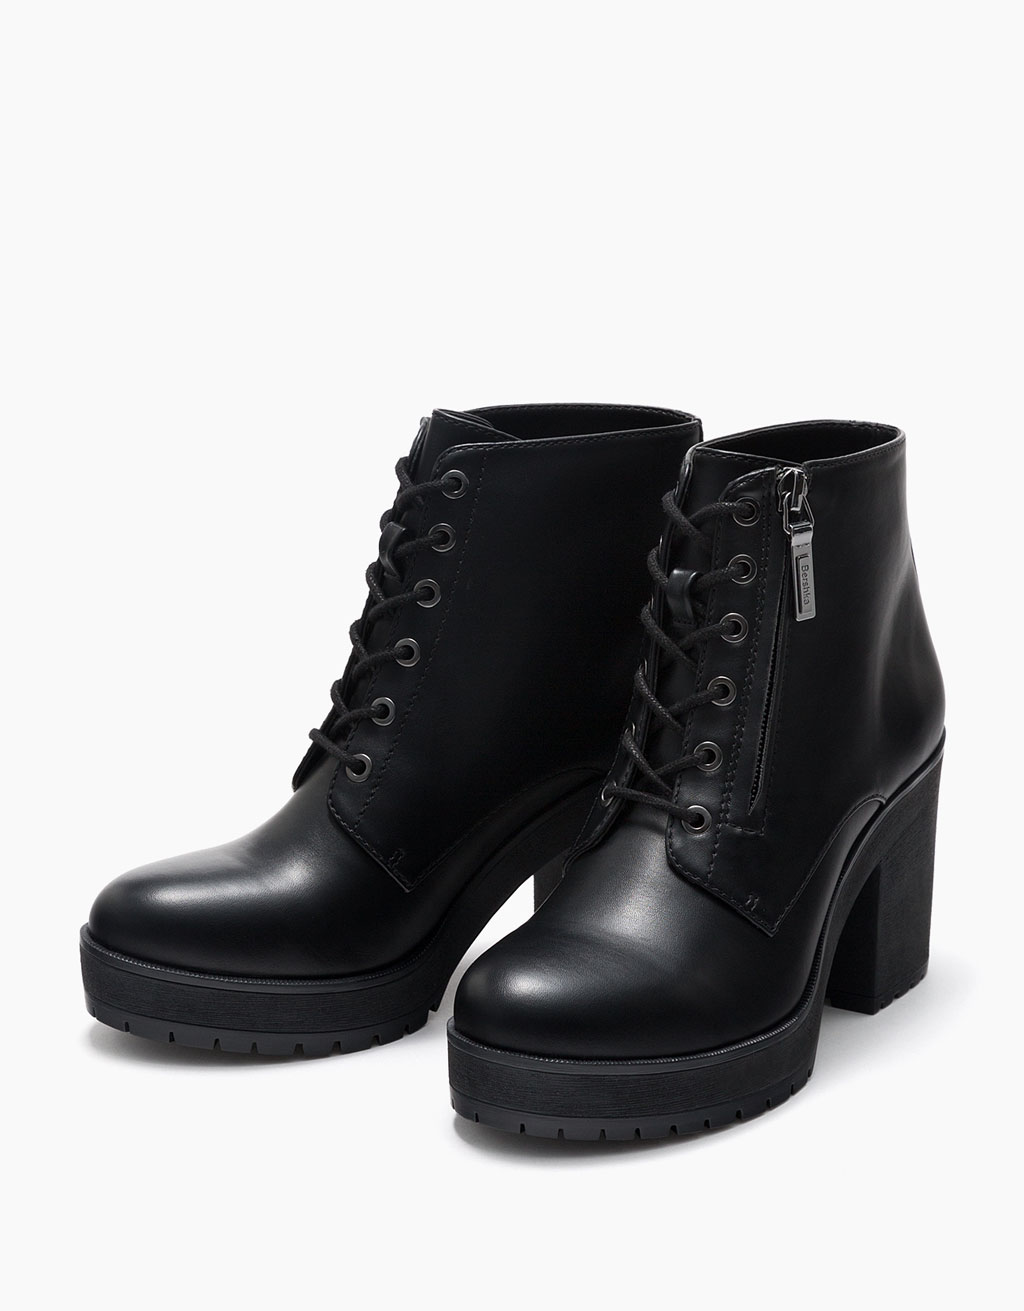 Boots & Ankle boots - SHOES - WOMAN - Bershka United Kingdom